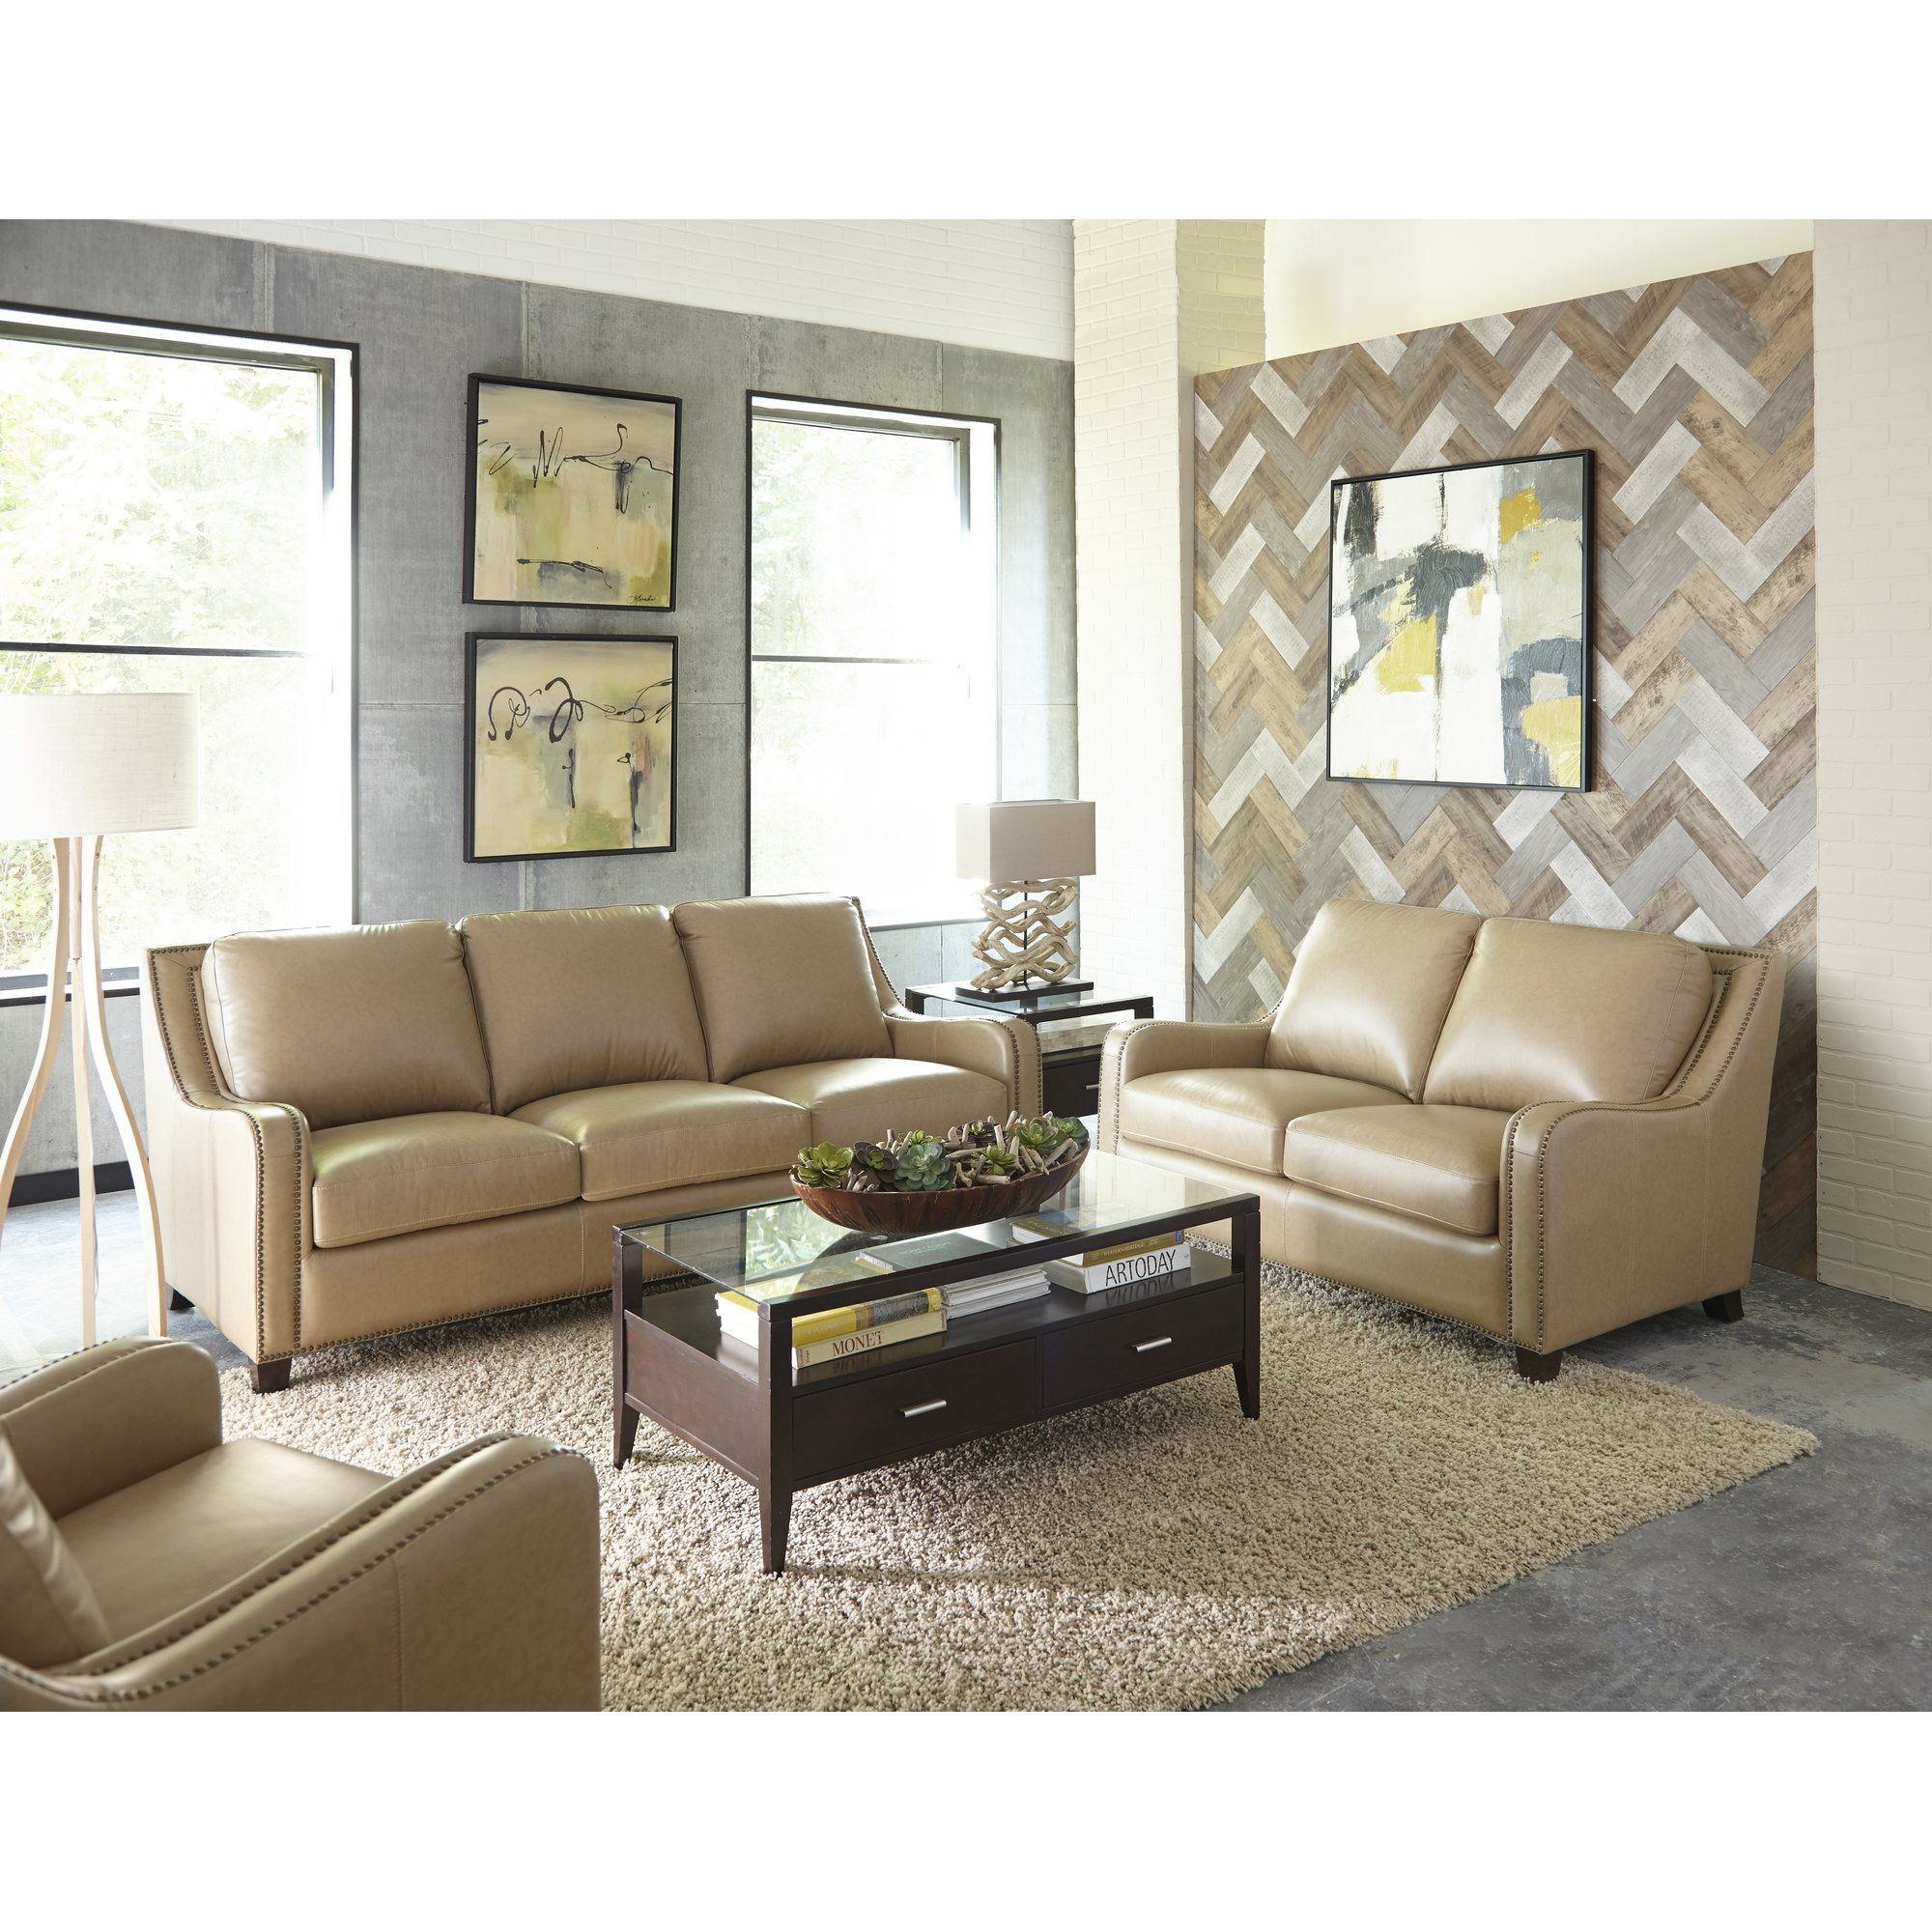 Cheap Living Room Furniture Stores: Denver Leather Sofa